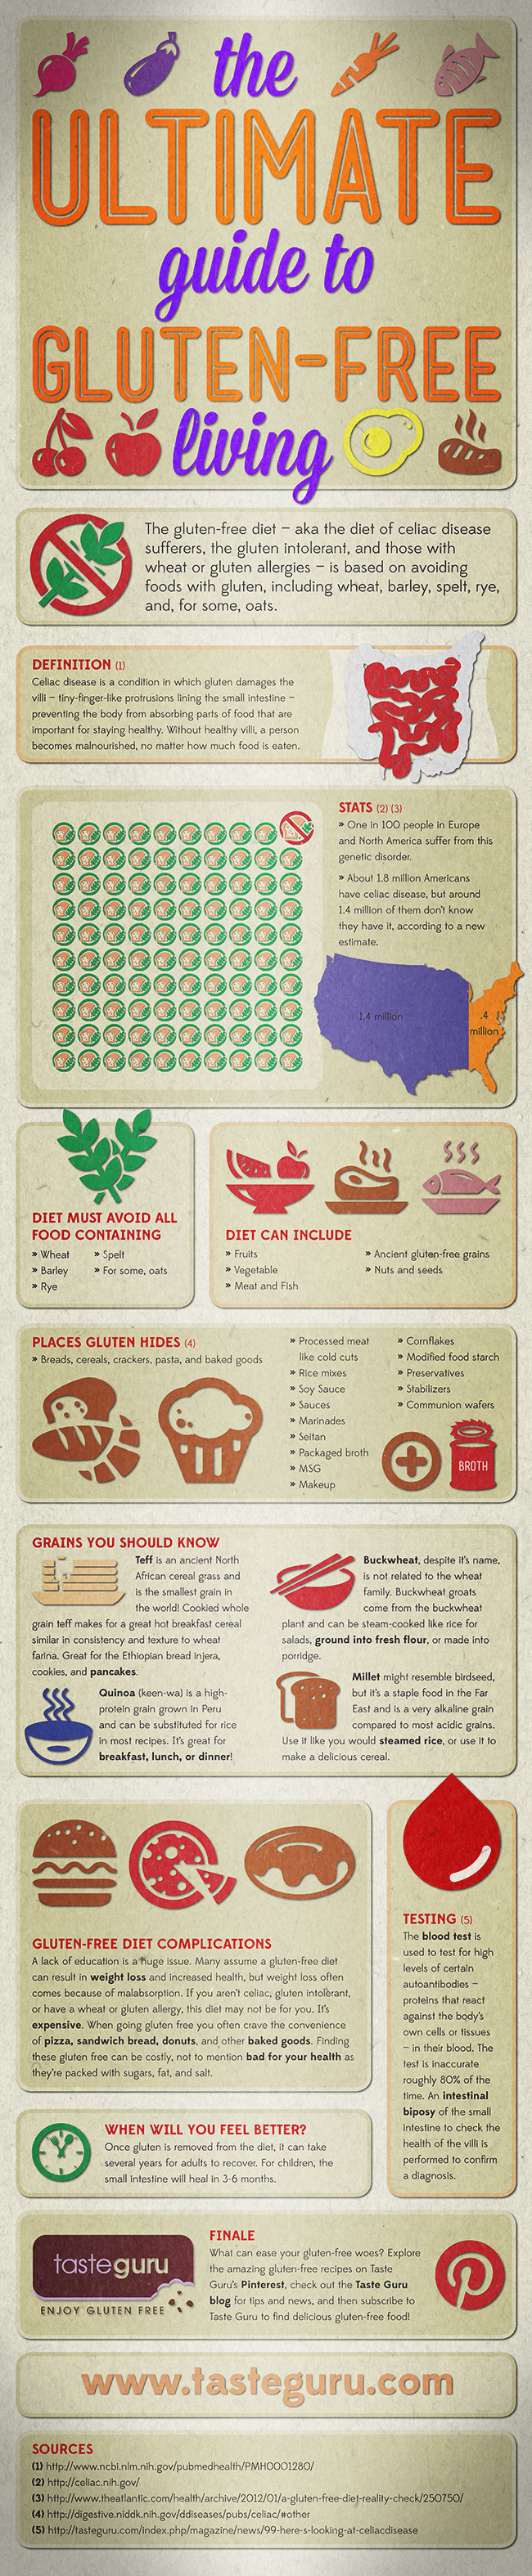 The Ultimate Guide to Gluten-Free Living